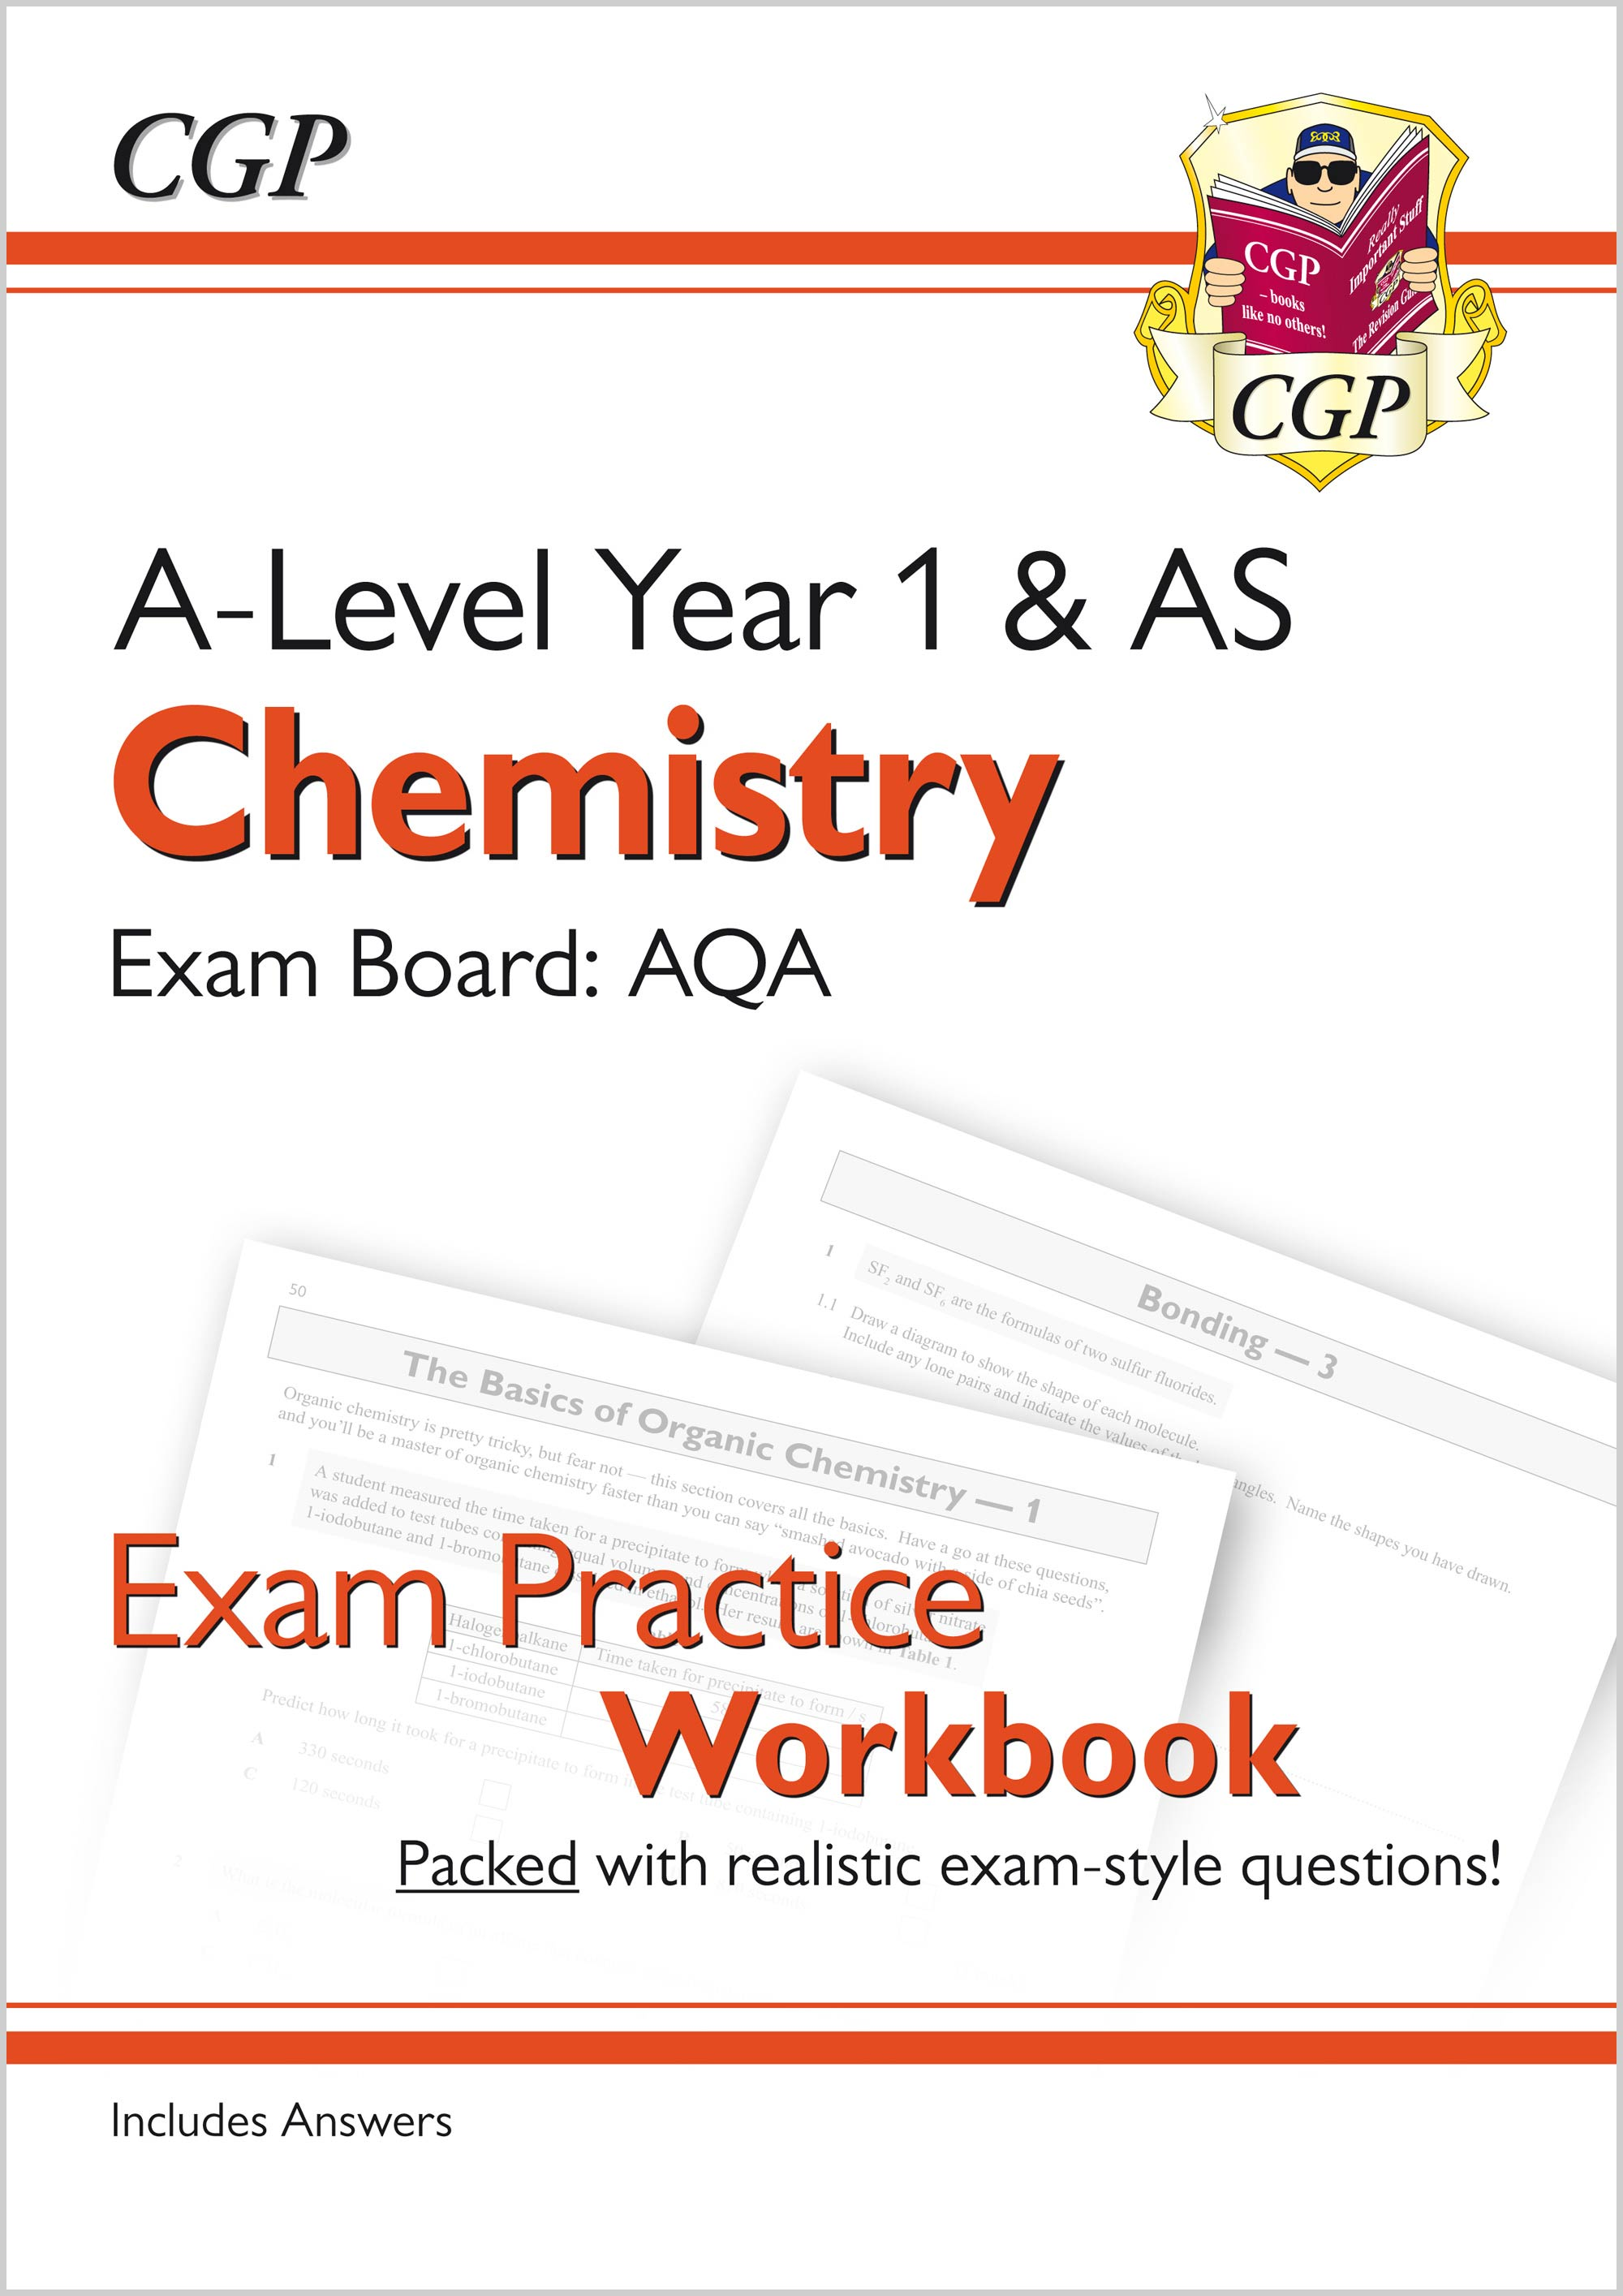 New A-Level Chemistry: AQA Year 1 & AS Exam Practice Workbook - includes  Answers